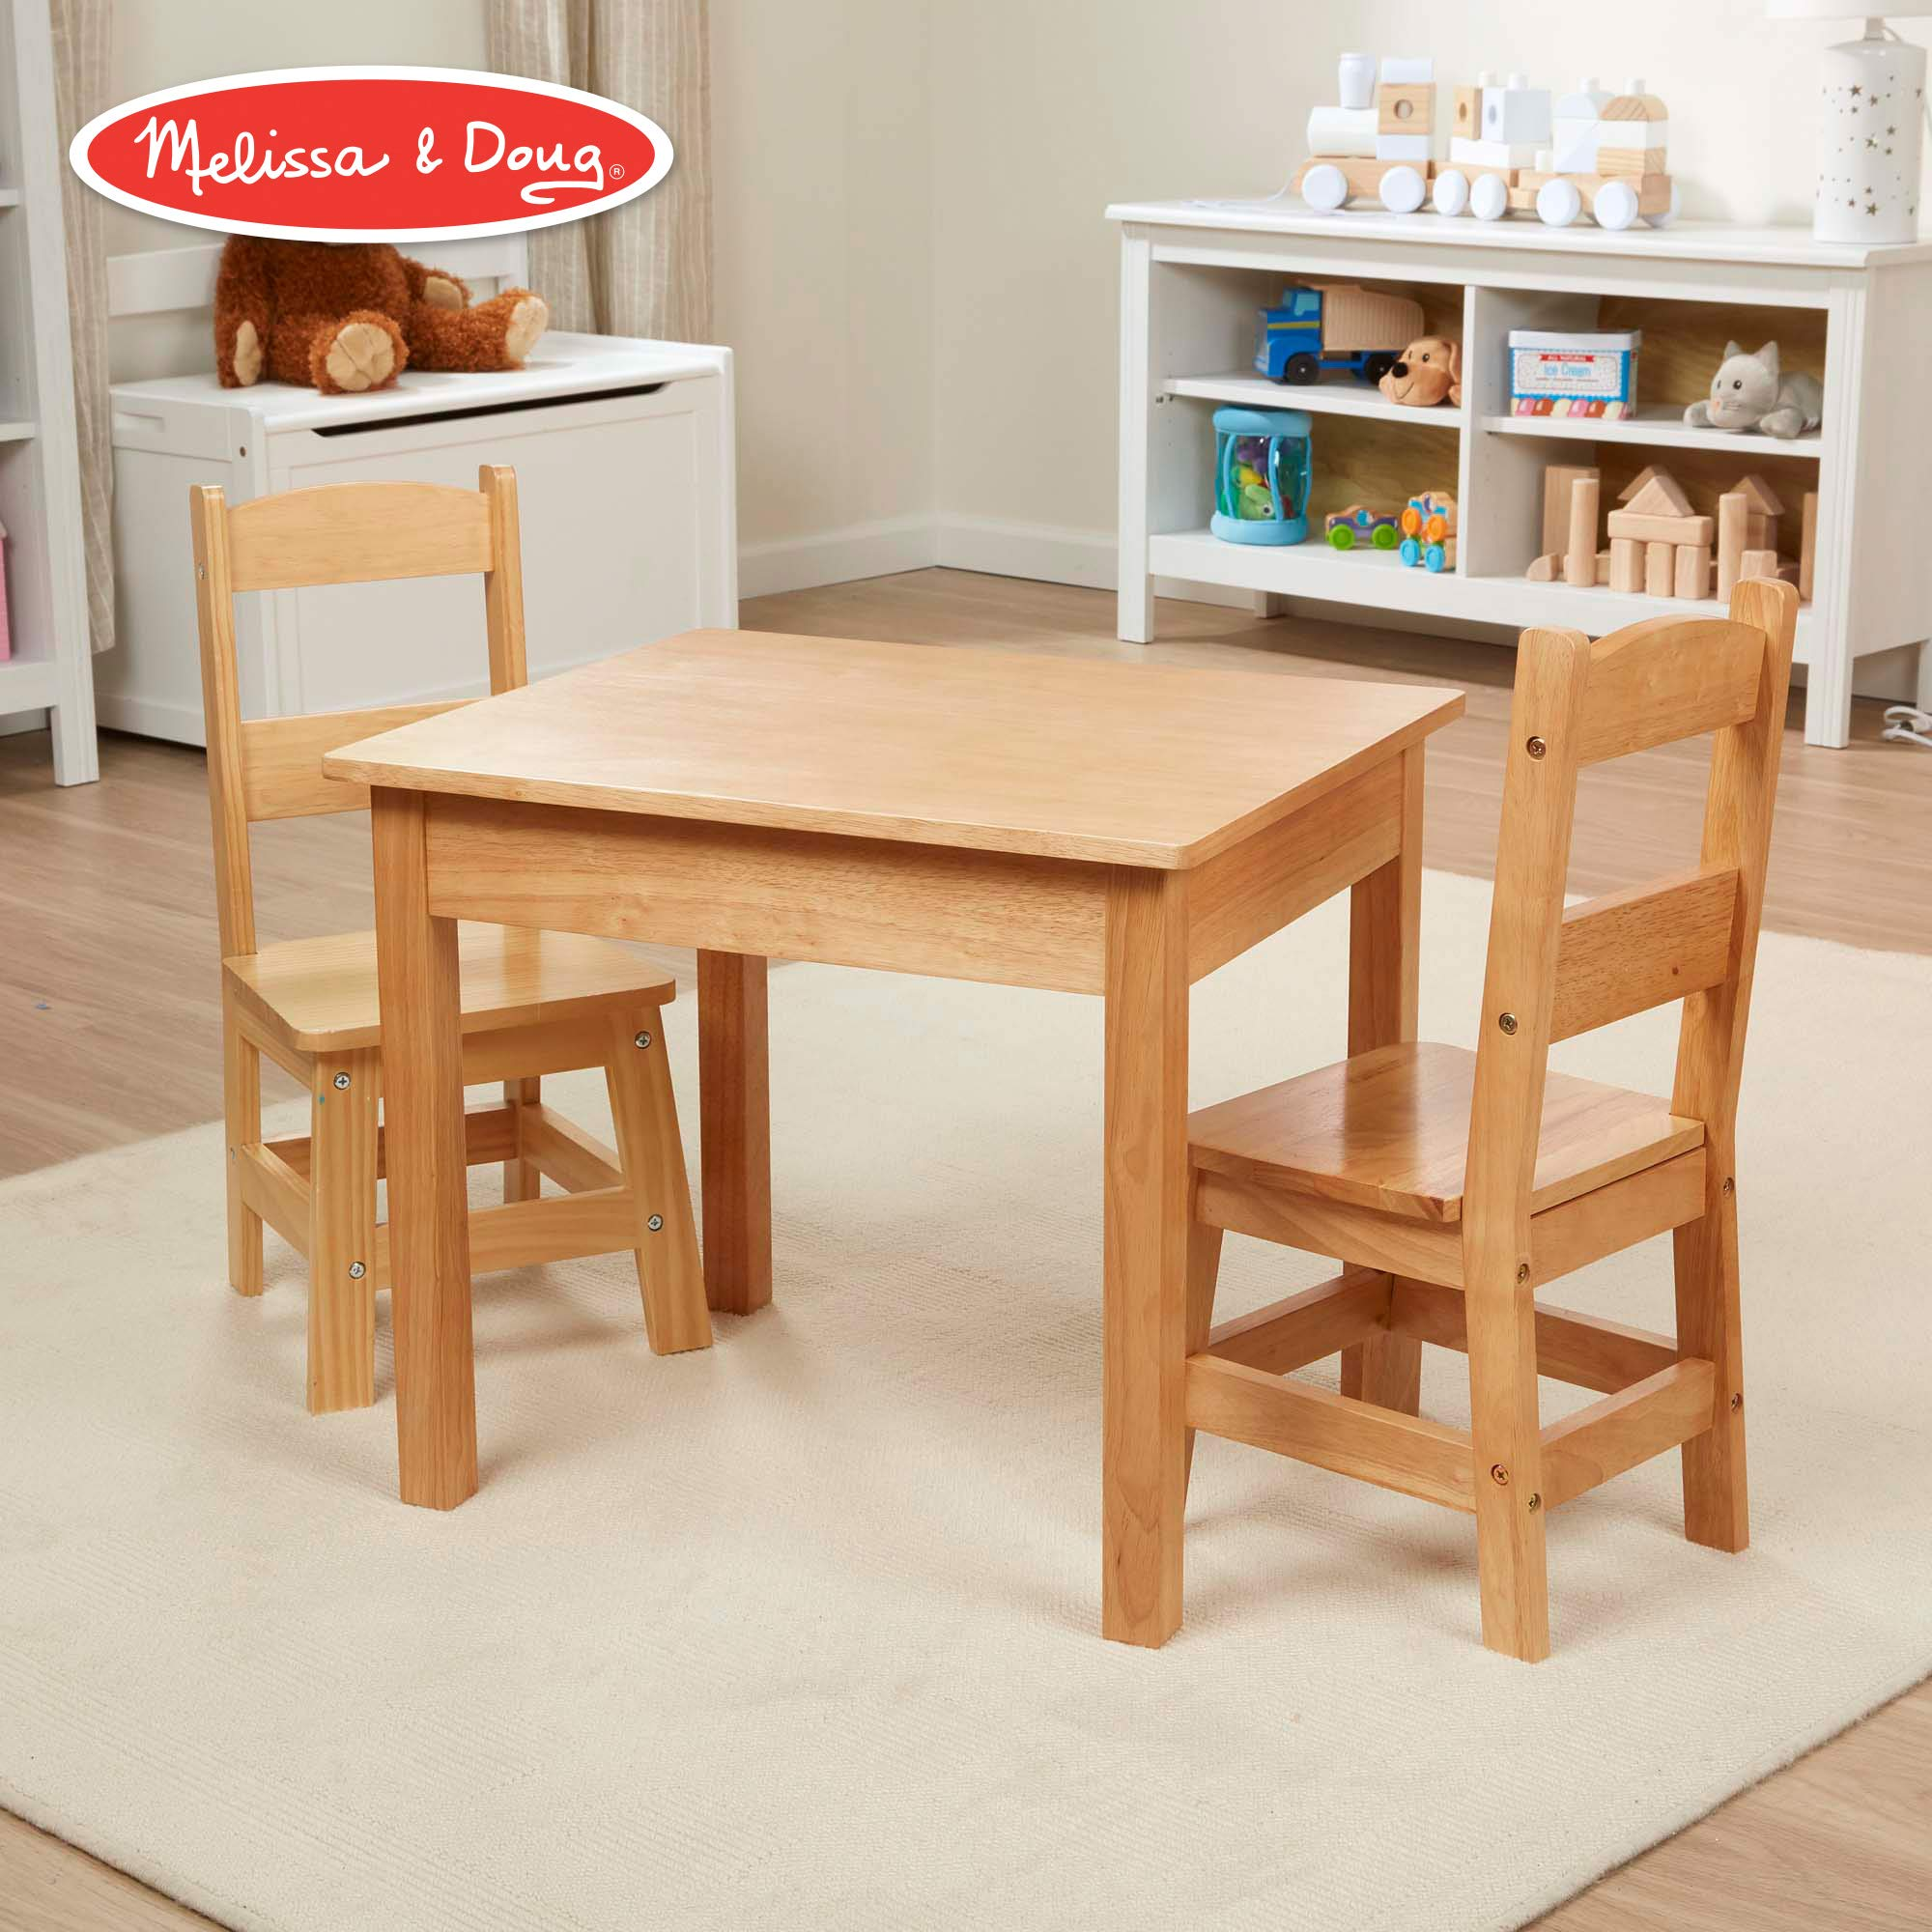 Melissa & Doug Solid Wood Table & Chairs (Kids Furniture, Sturdy Wooden Furniture, 3-Piece Set, 20'' H x 23.5'' W x 20.5'' L) by Melissa & Doug